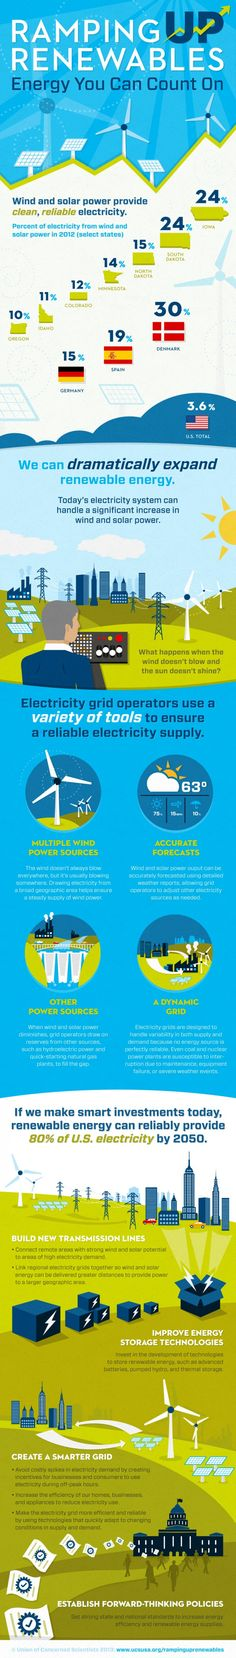 Renewable Energy Infographic Union of Concerned Scientists